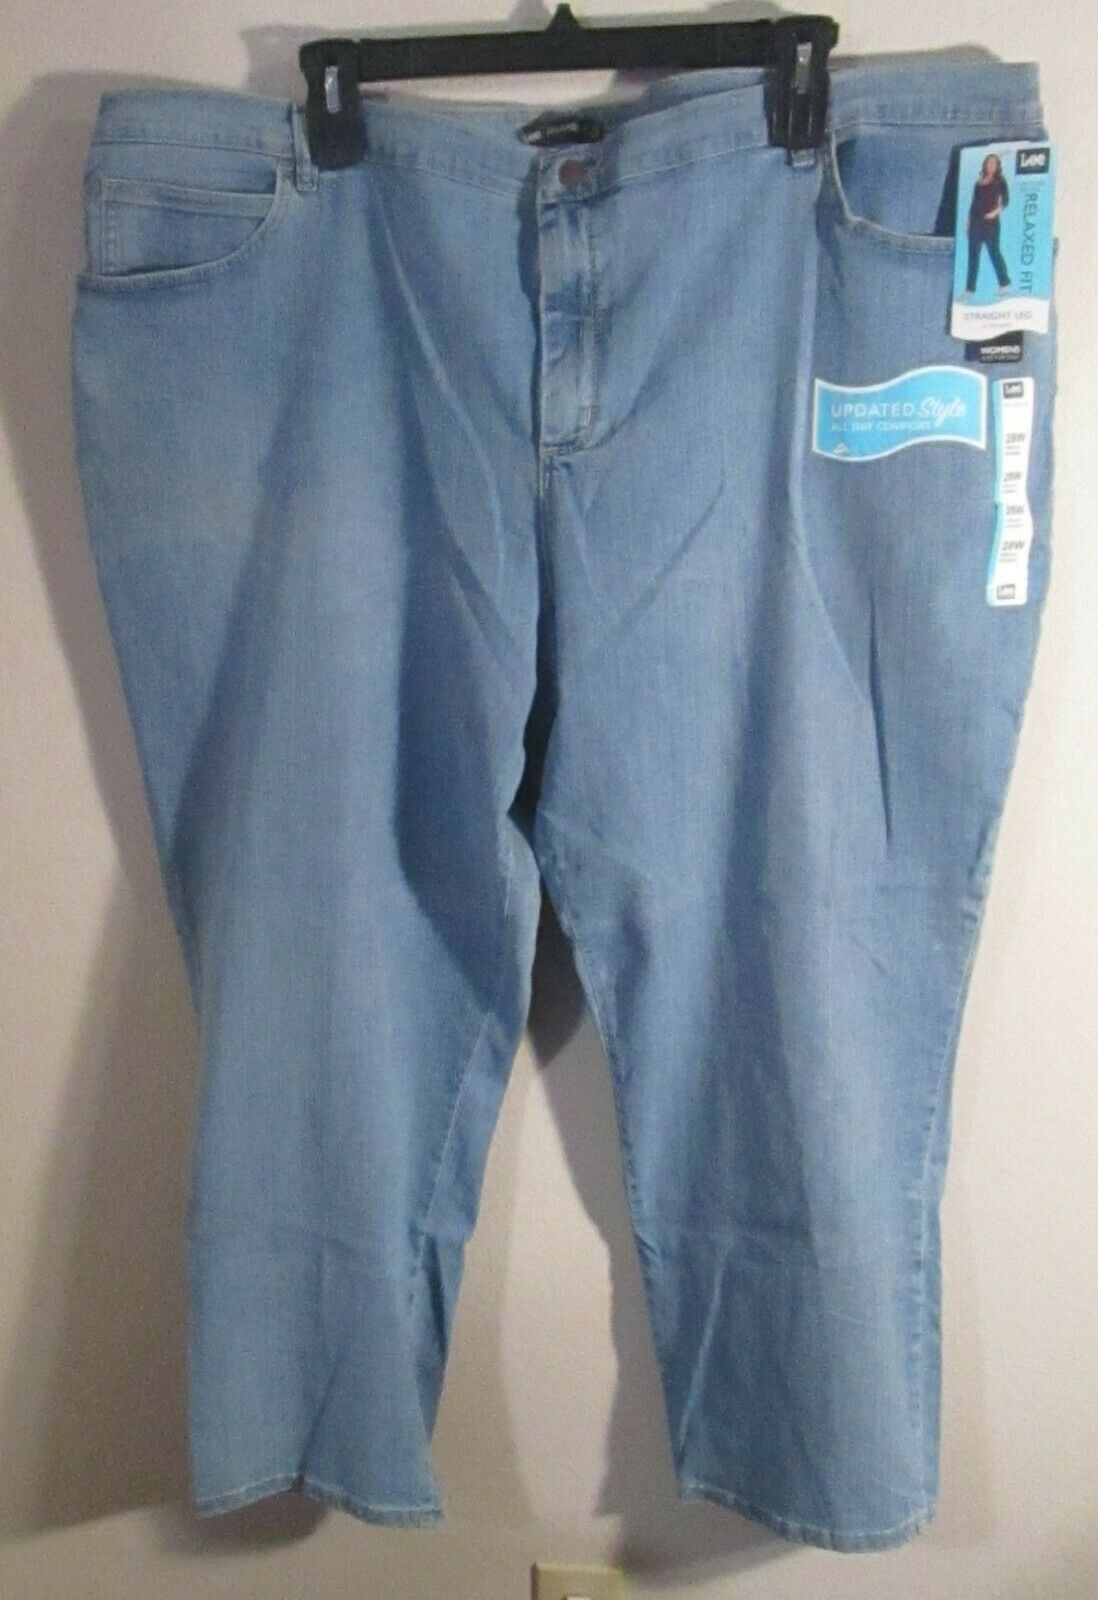 NWT Lee Womens Plus Size Relaxed Fit Straight Leg Jeans 28W